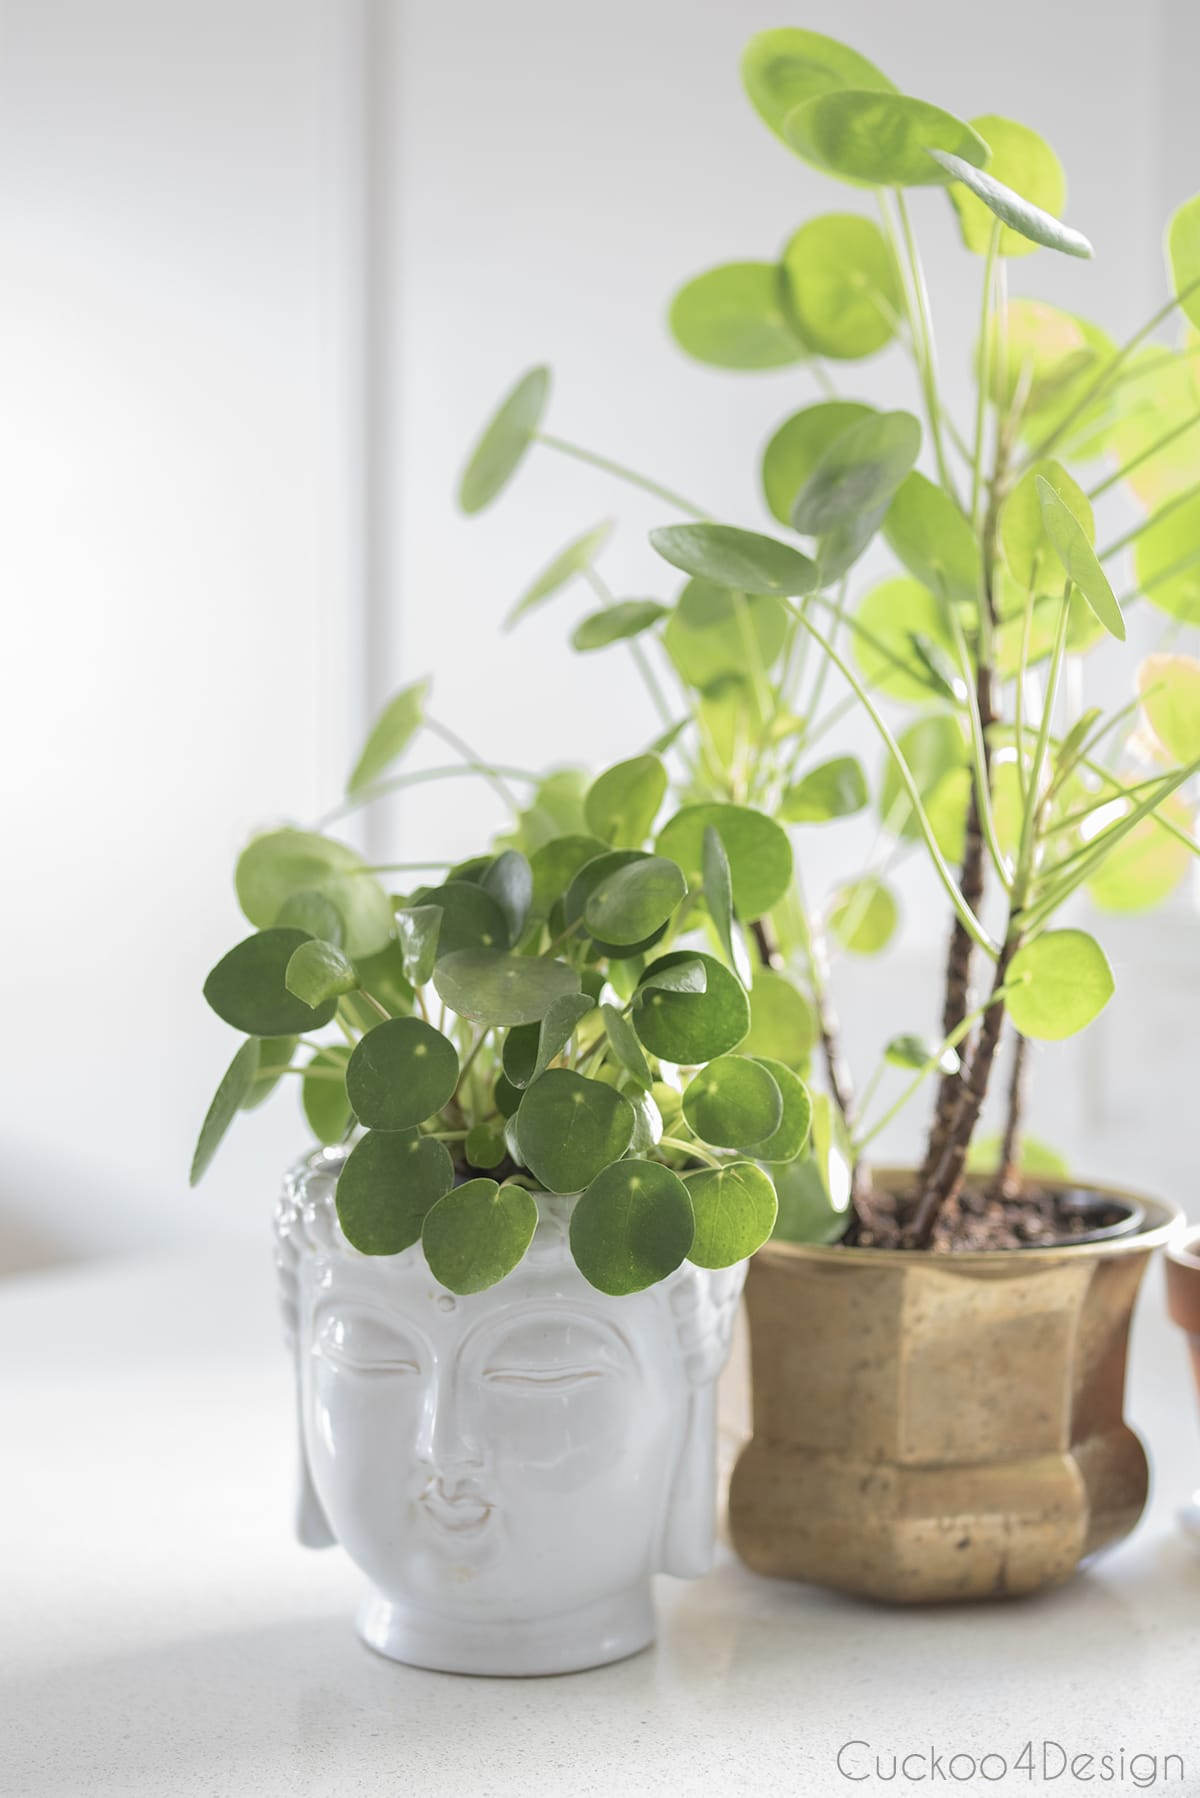 Chinese Money Plant in buddha flower pot on kitchen counter